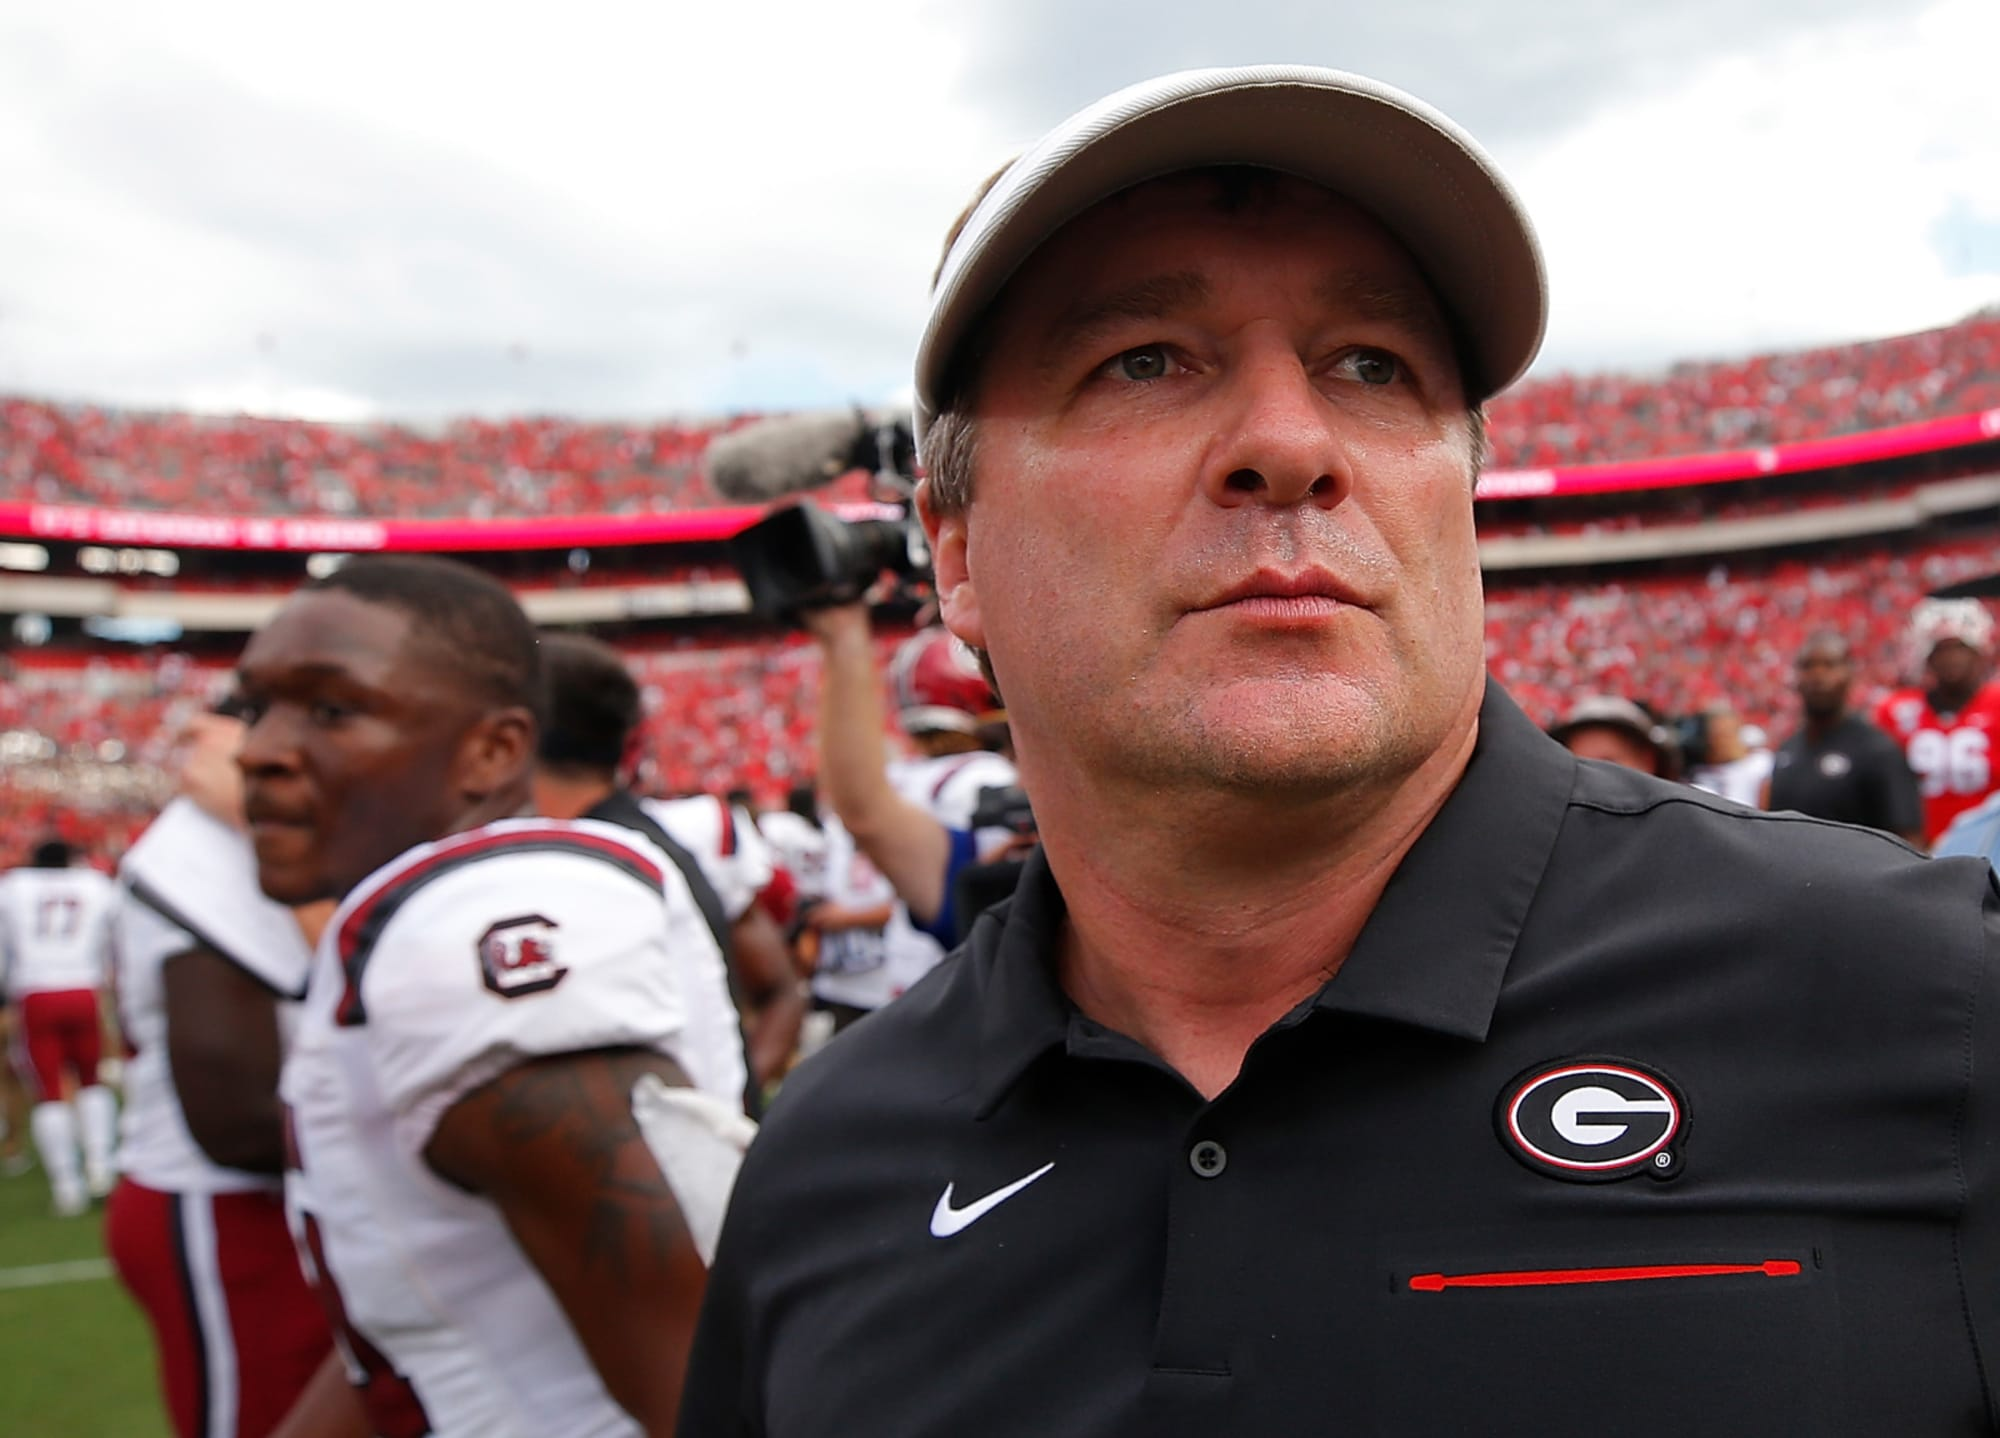 Georgia football: 5 recruits most likely to sign with Georgia Bulldogs